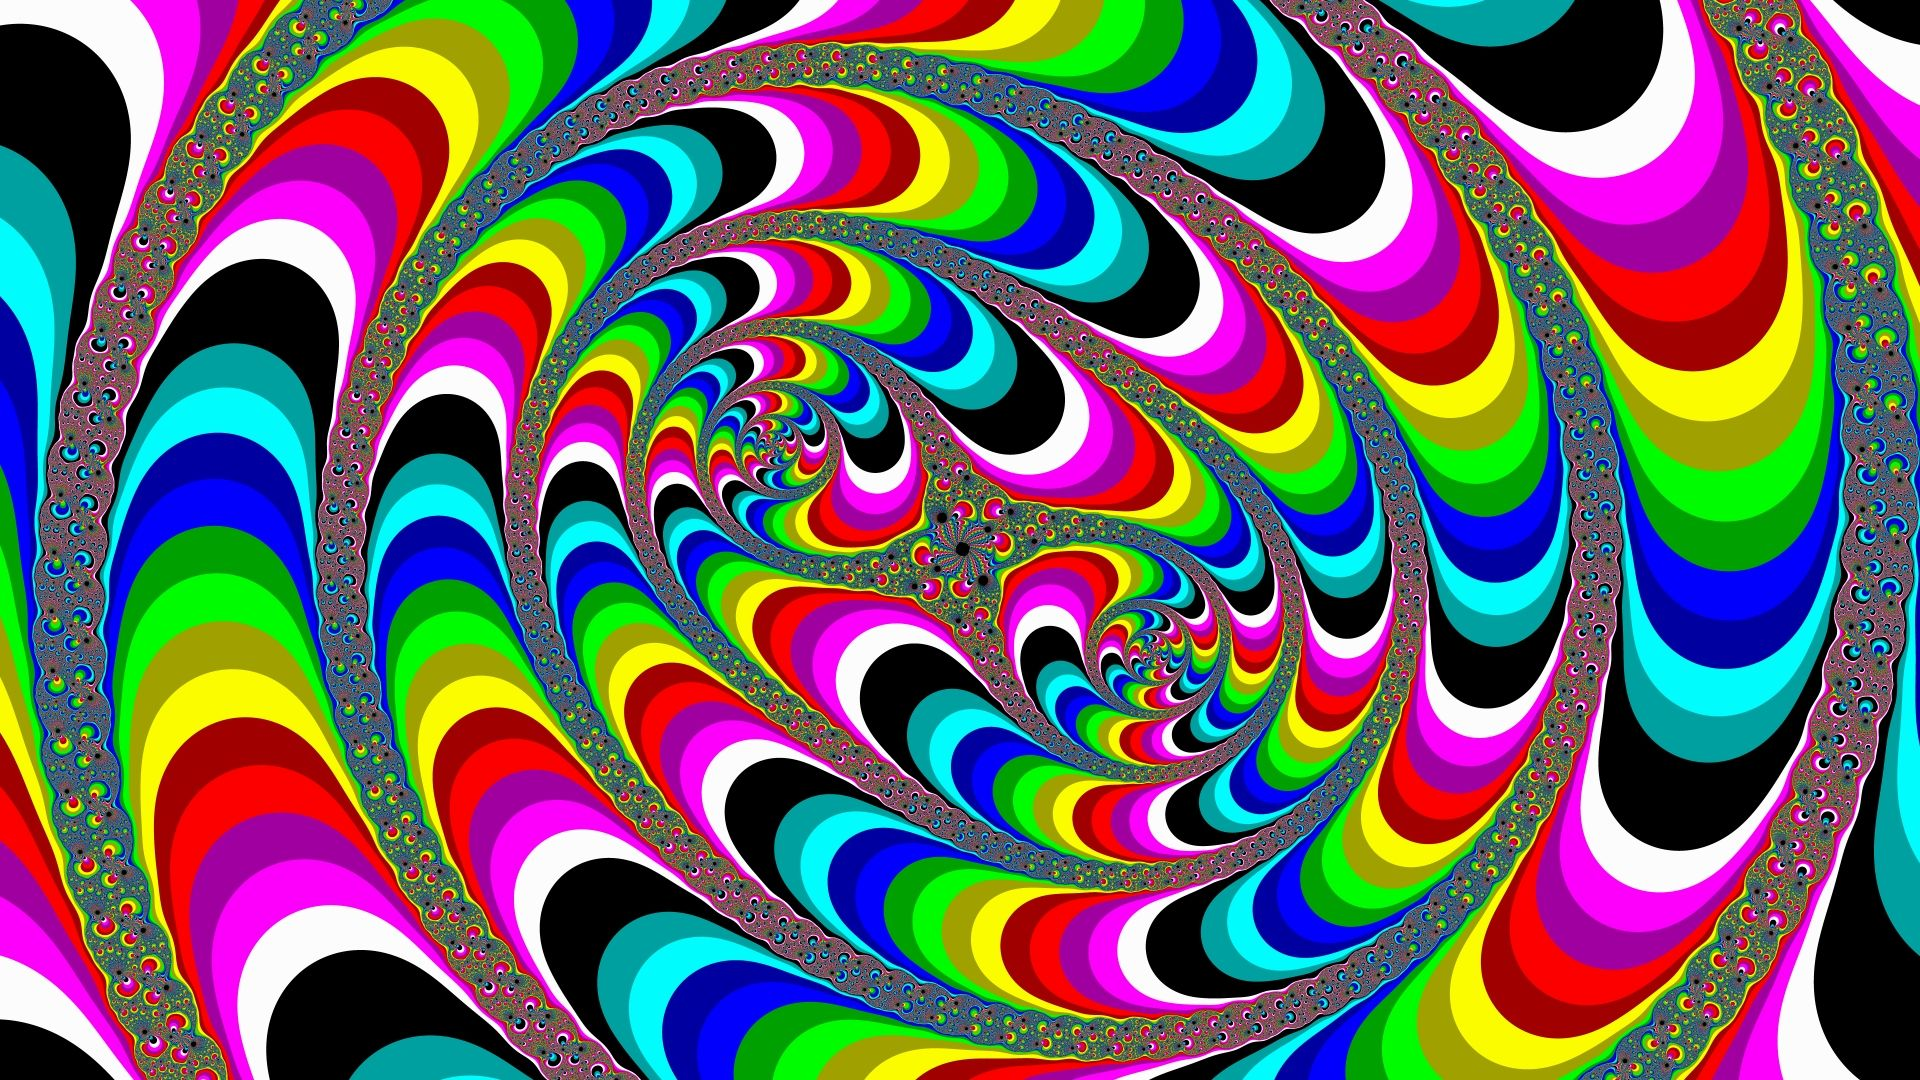 Psychedelic Mind wallpaper free Trippy backgrounds